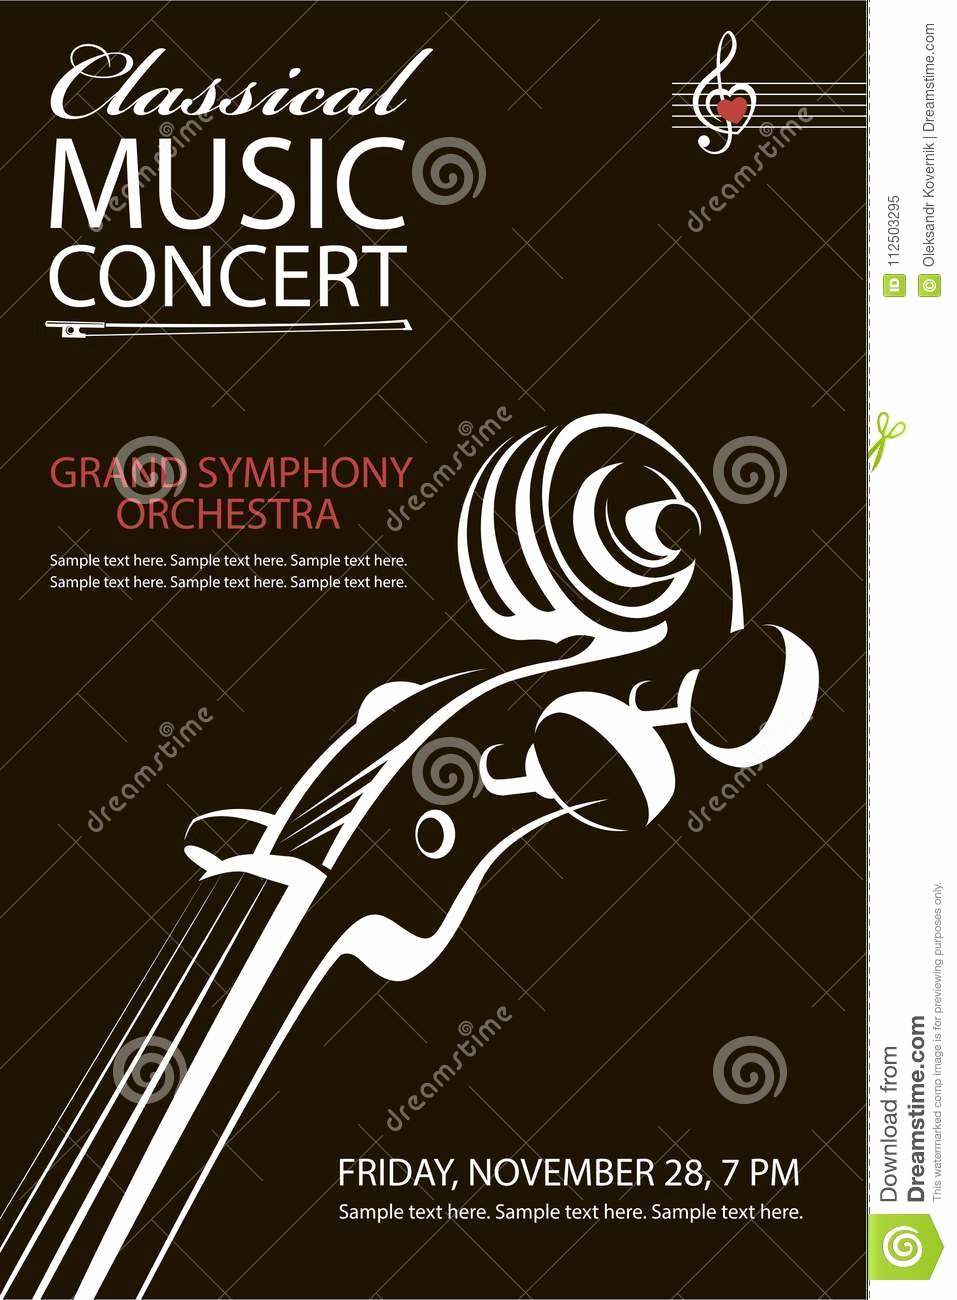 Classical Music Concert Posters Lovely Classical Cartoons Illustrations & Vector Stock